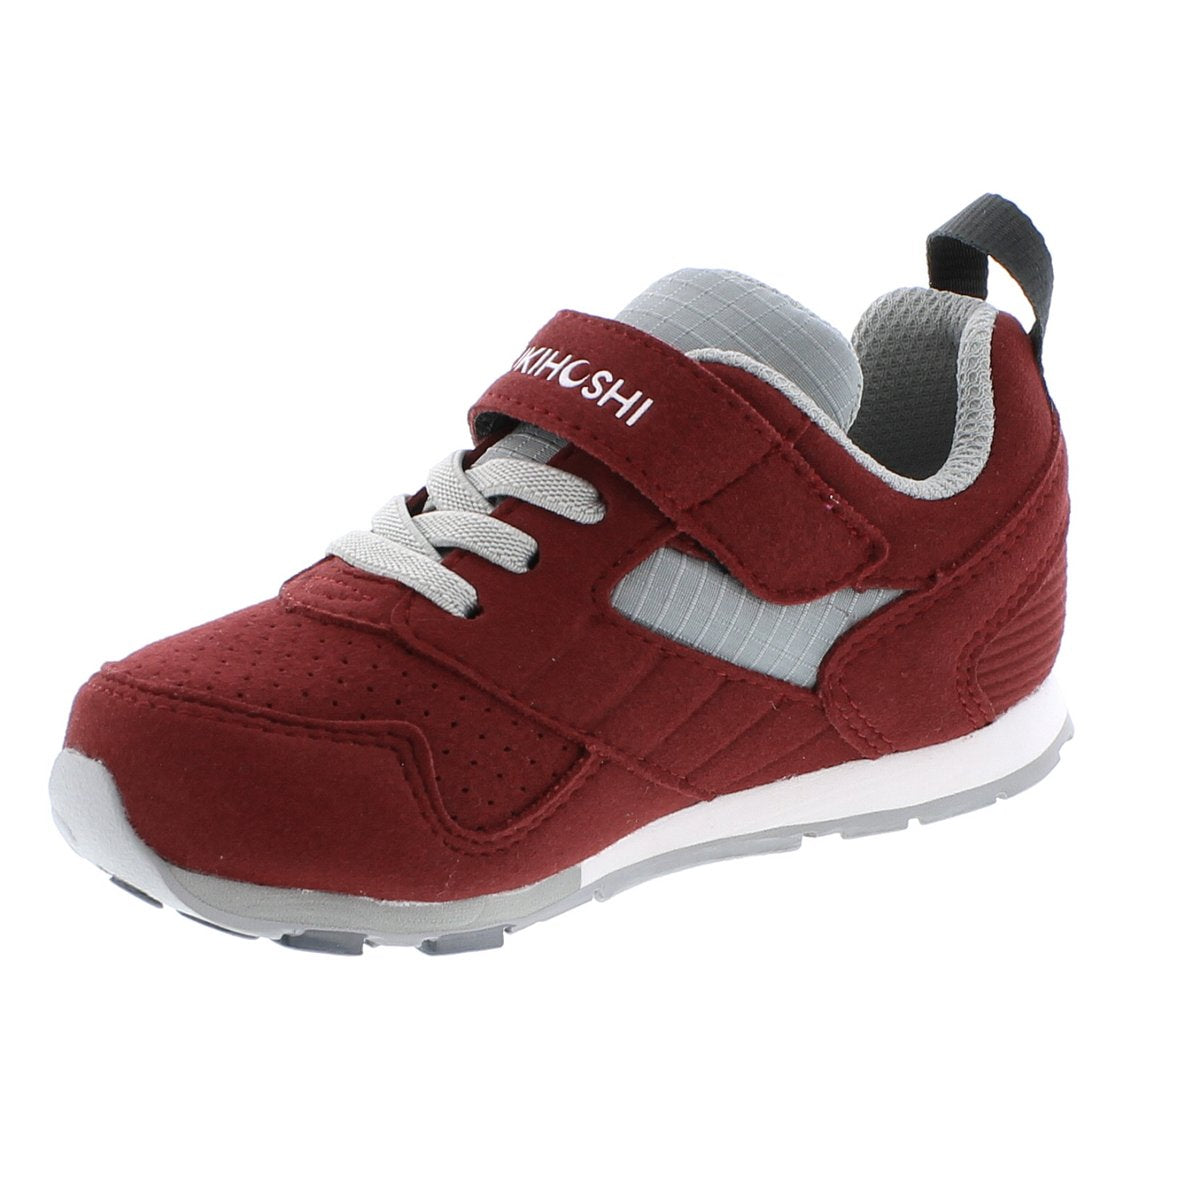 Child Tsukihoshi Racer Sneaker in Crimson/Gray from the front view